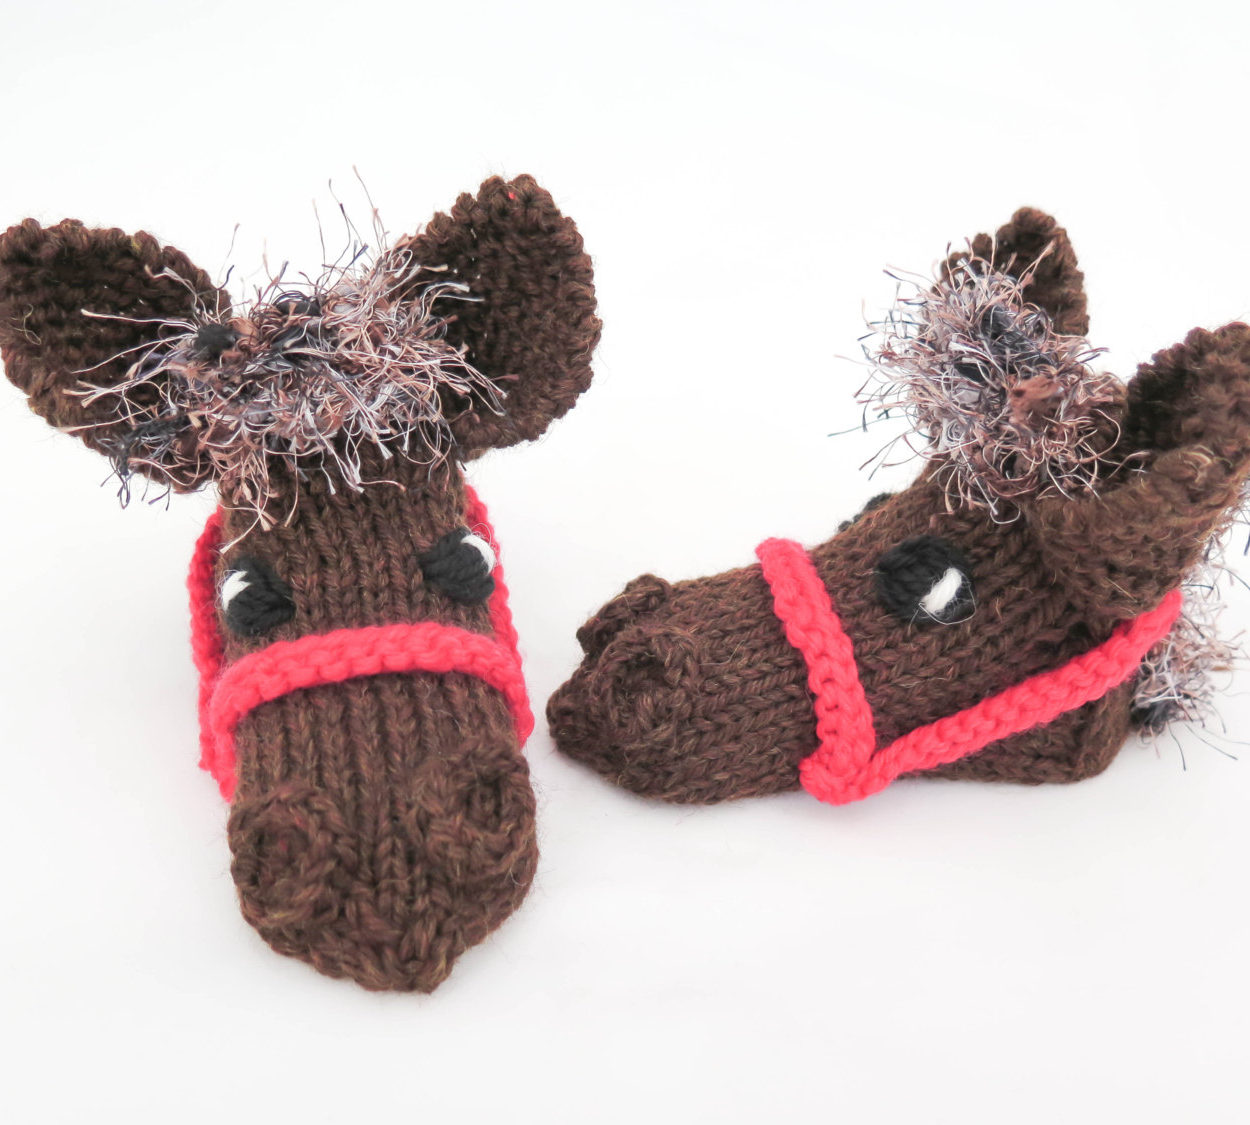 Knitting Pattern for Horse Slippers or Baby Booties